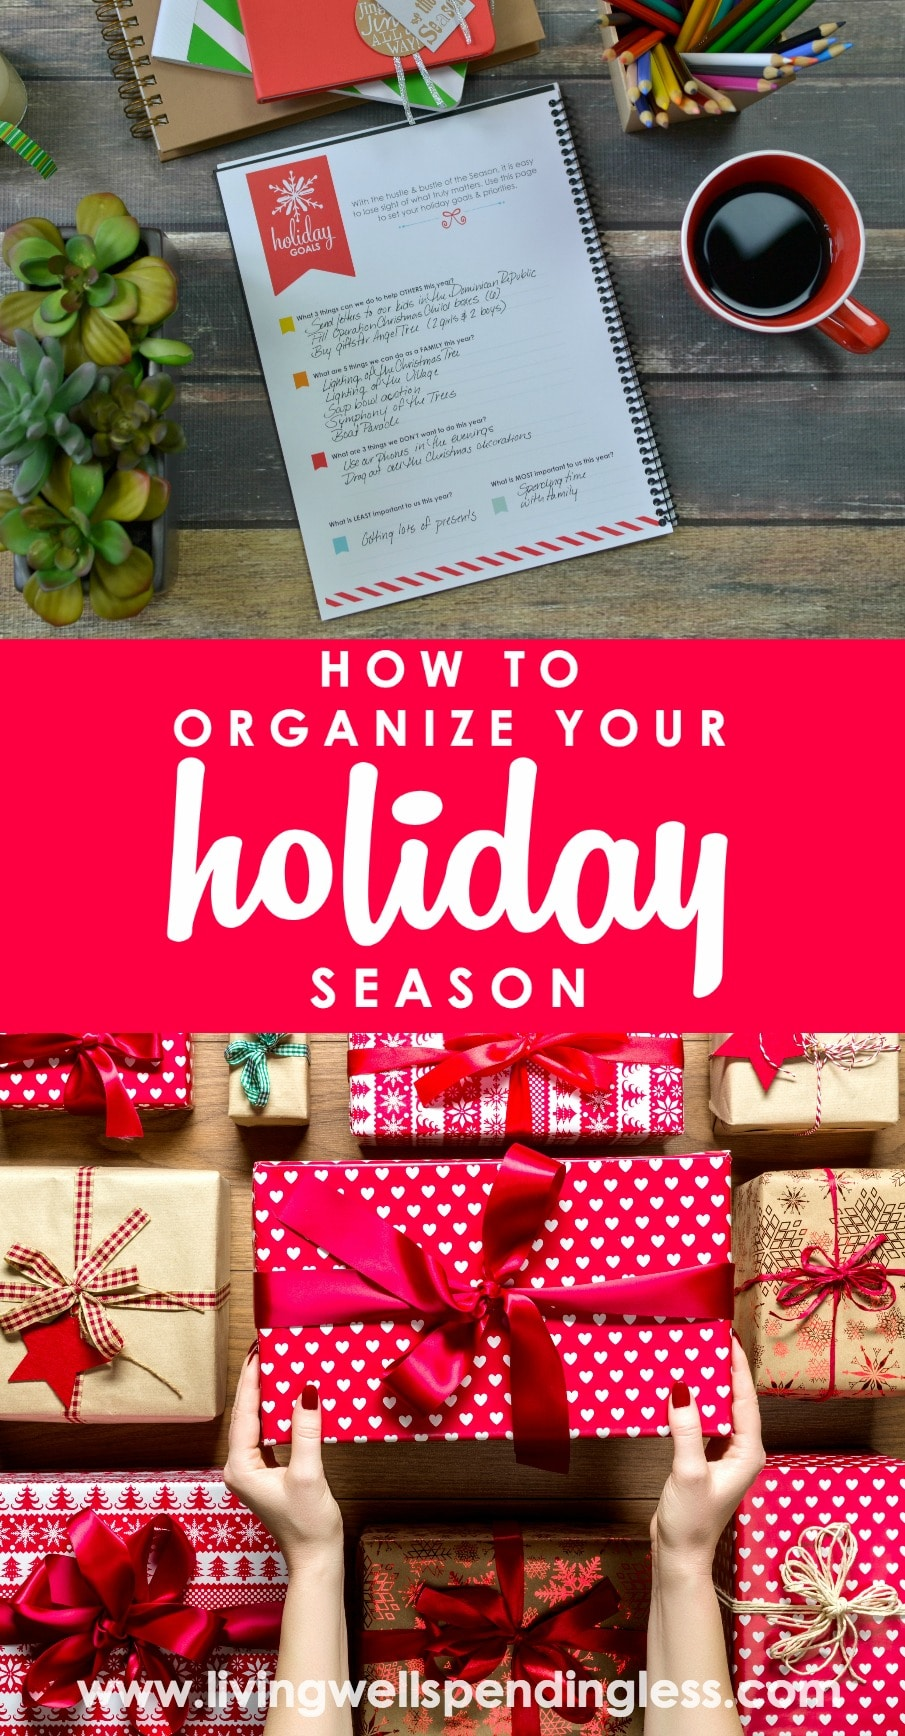 How to Organize Your Holiday Season | How to Get Organized for the Holidays | Living Well Spending Less Holiday Planner